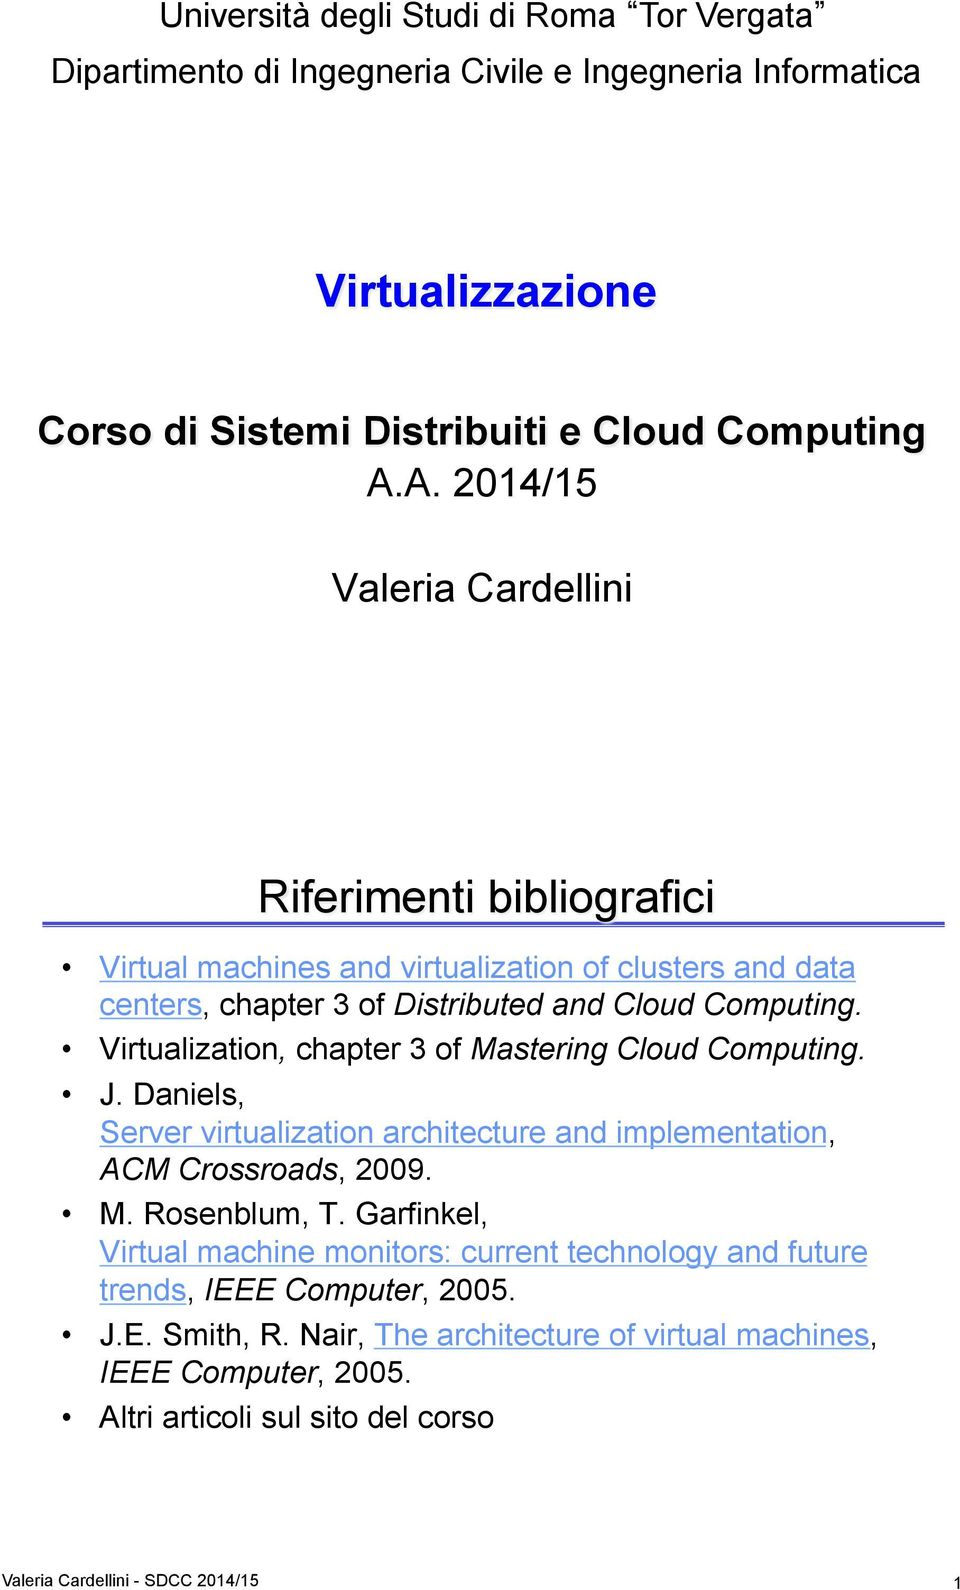 Virtualization, chapter 3 of Mastering Cloud Computing. J. Daniels, Server virtualization architecture and implementation, ACM Crossroads, 2009. M. Rosenblum, T.